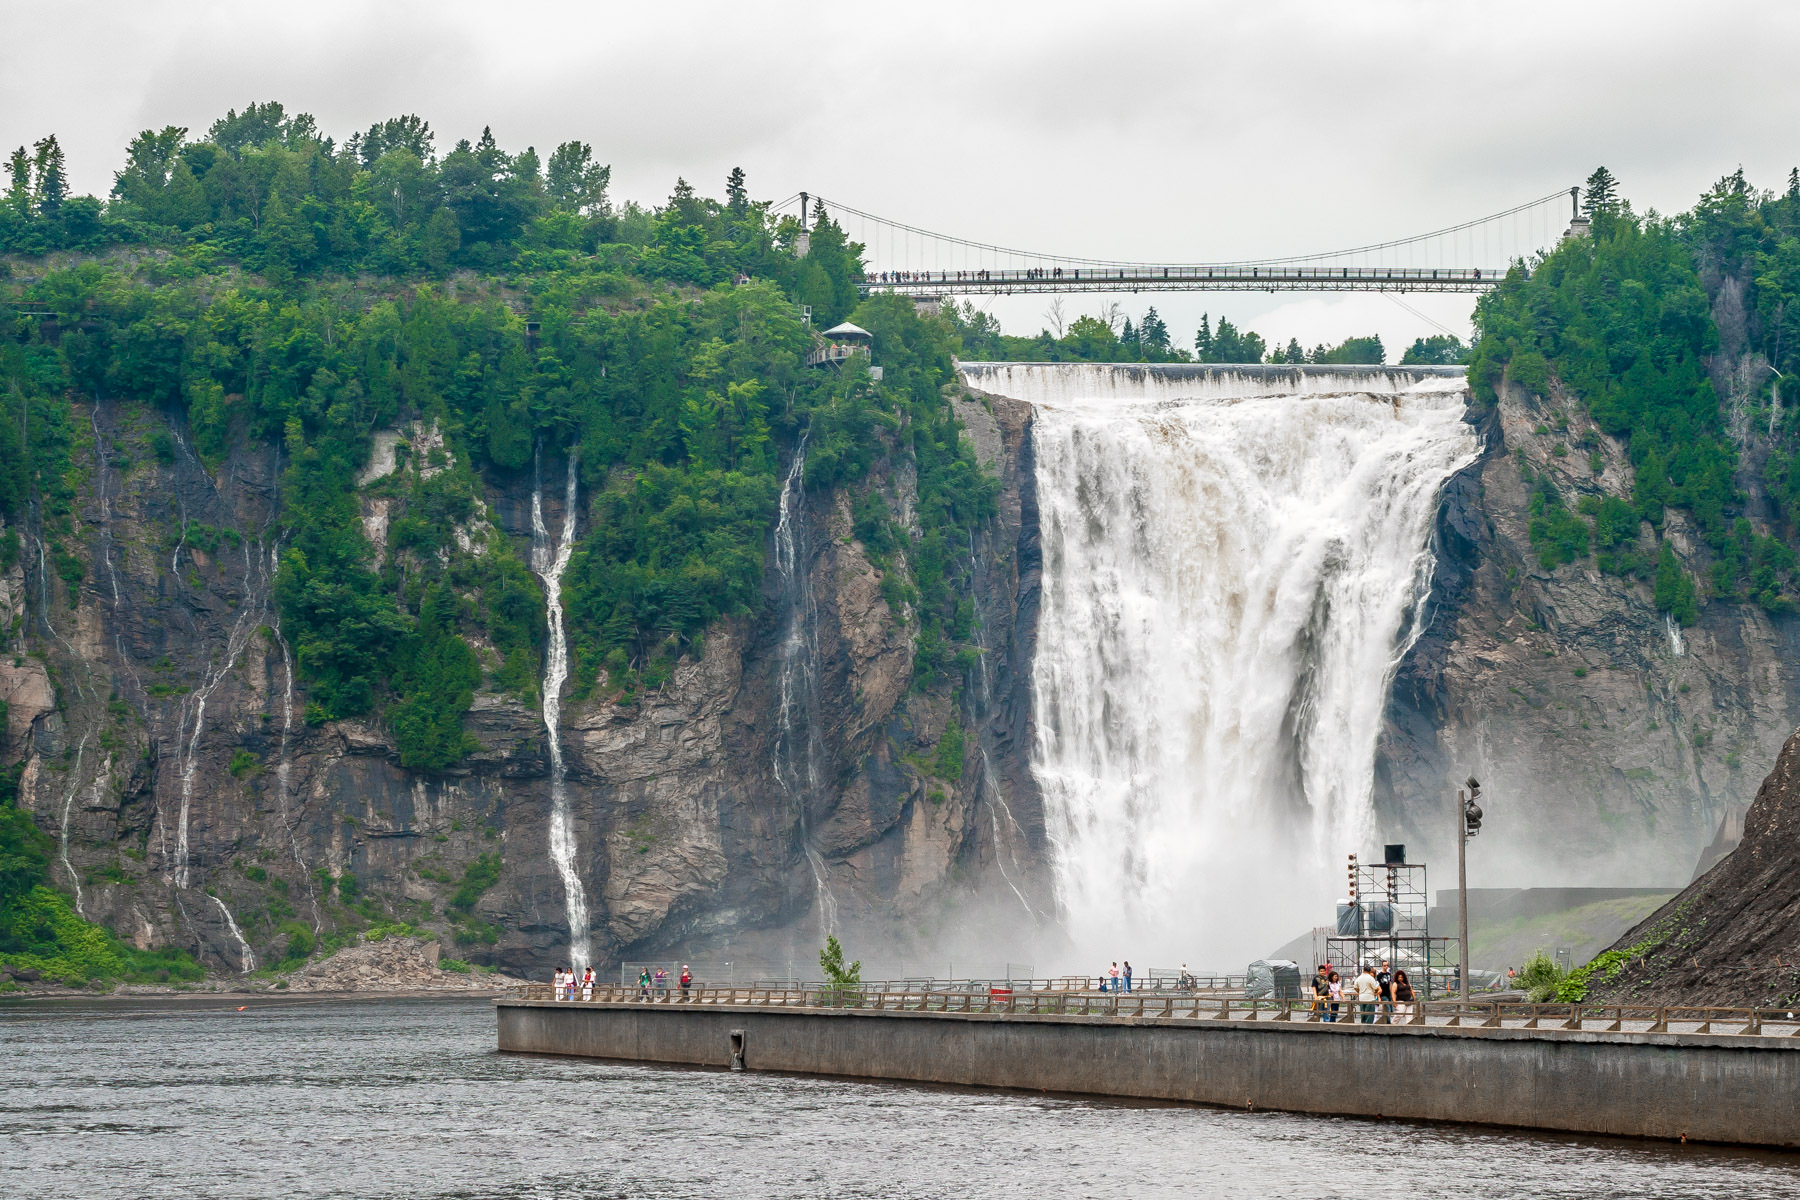 Quebec's Montmorency Falls drop 275 feet (84 meters) where the Montmorency River meets the Saint Lawrence River near Quebec City.